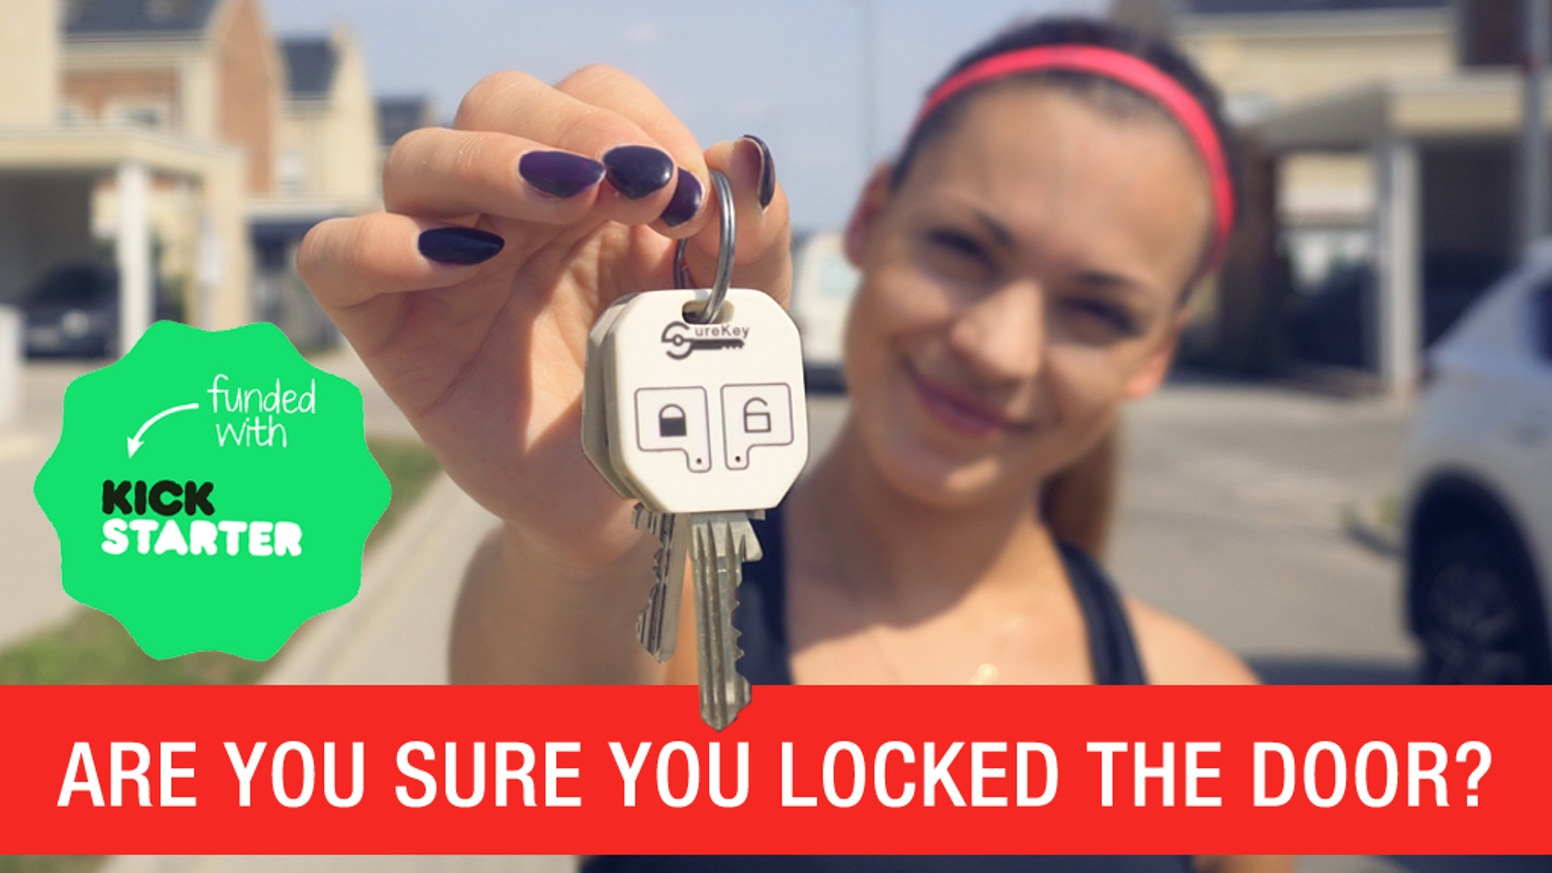 A PERFECT solution to  everyday problems. SureKey reminds you whether or not your door is locked and helps you track your keys.